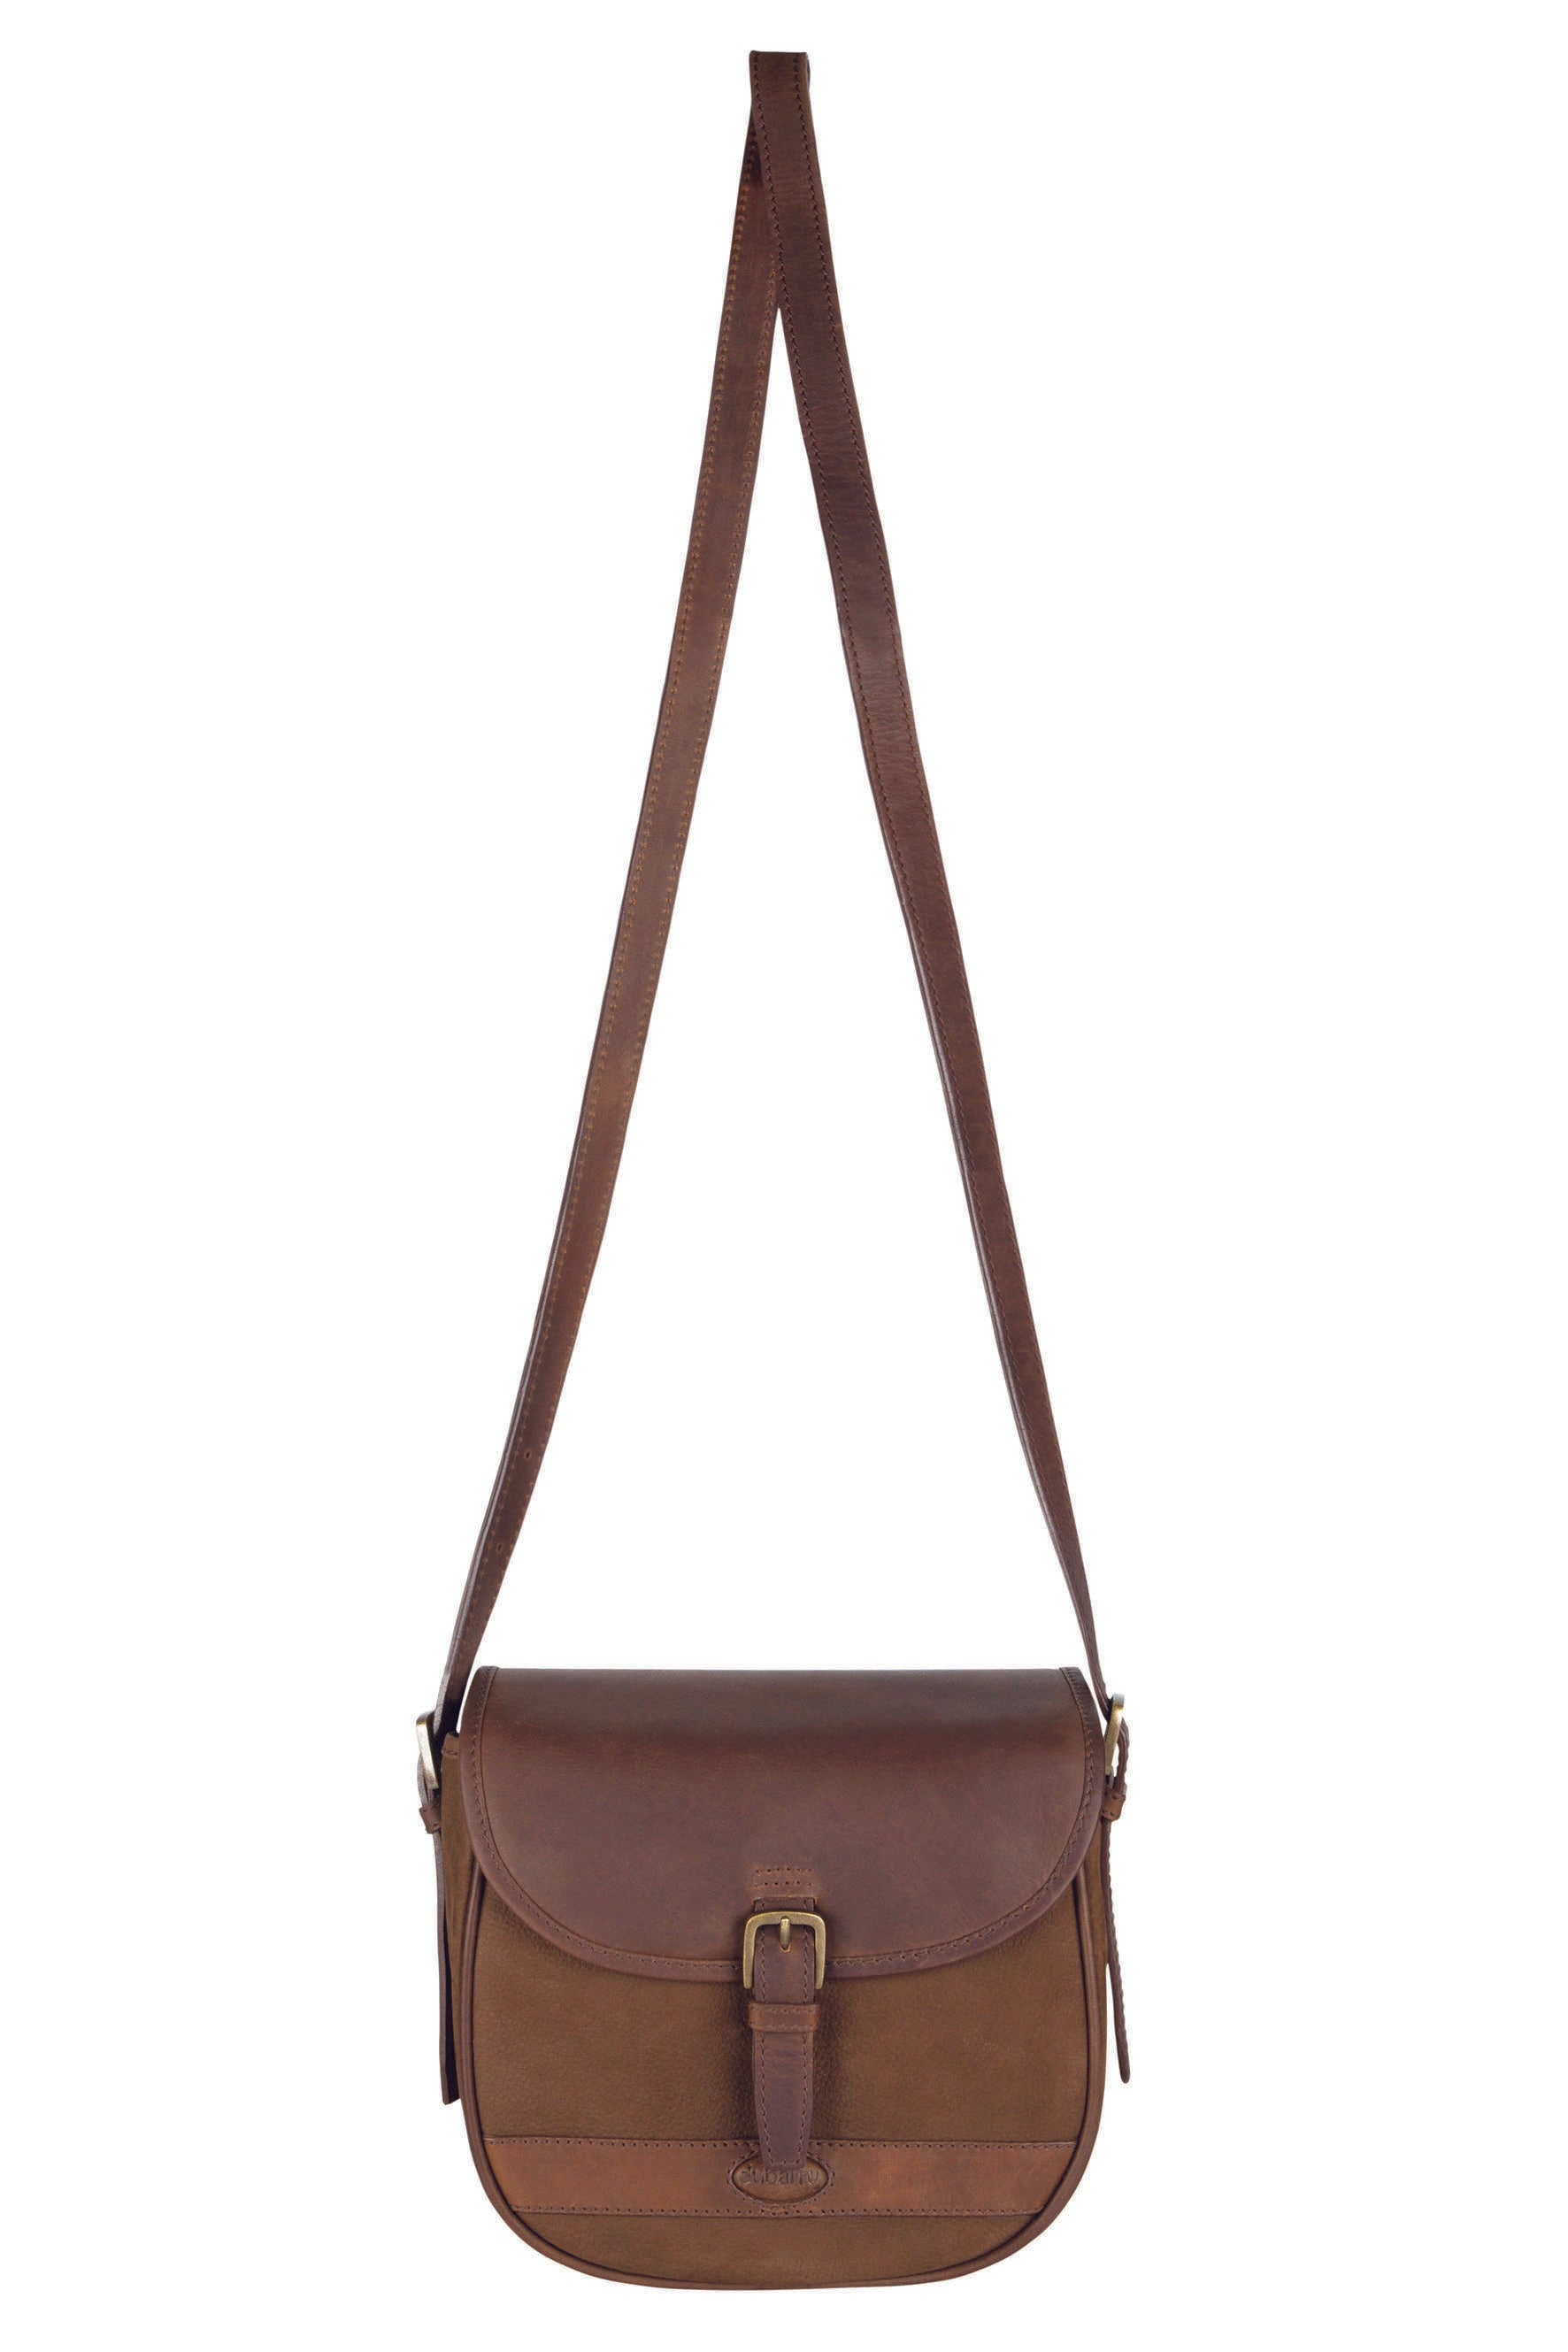 Dubarry Clara Leather Saddle Style Bag for Ladies in Walnut